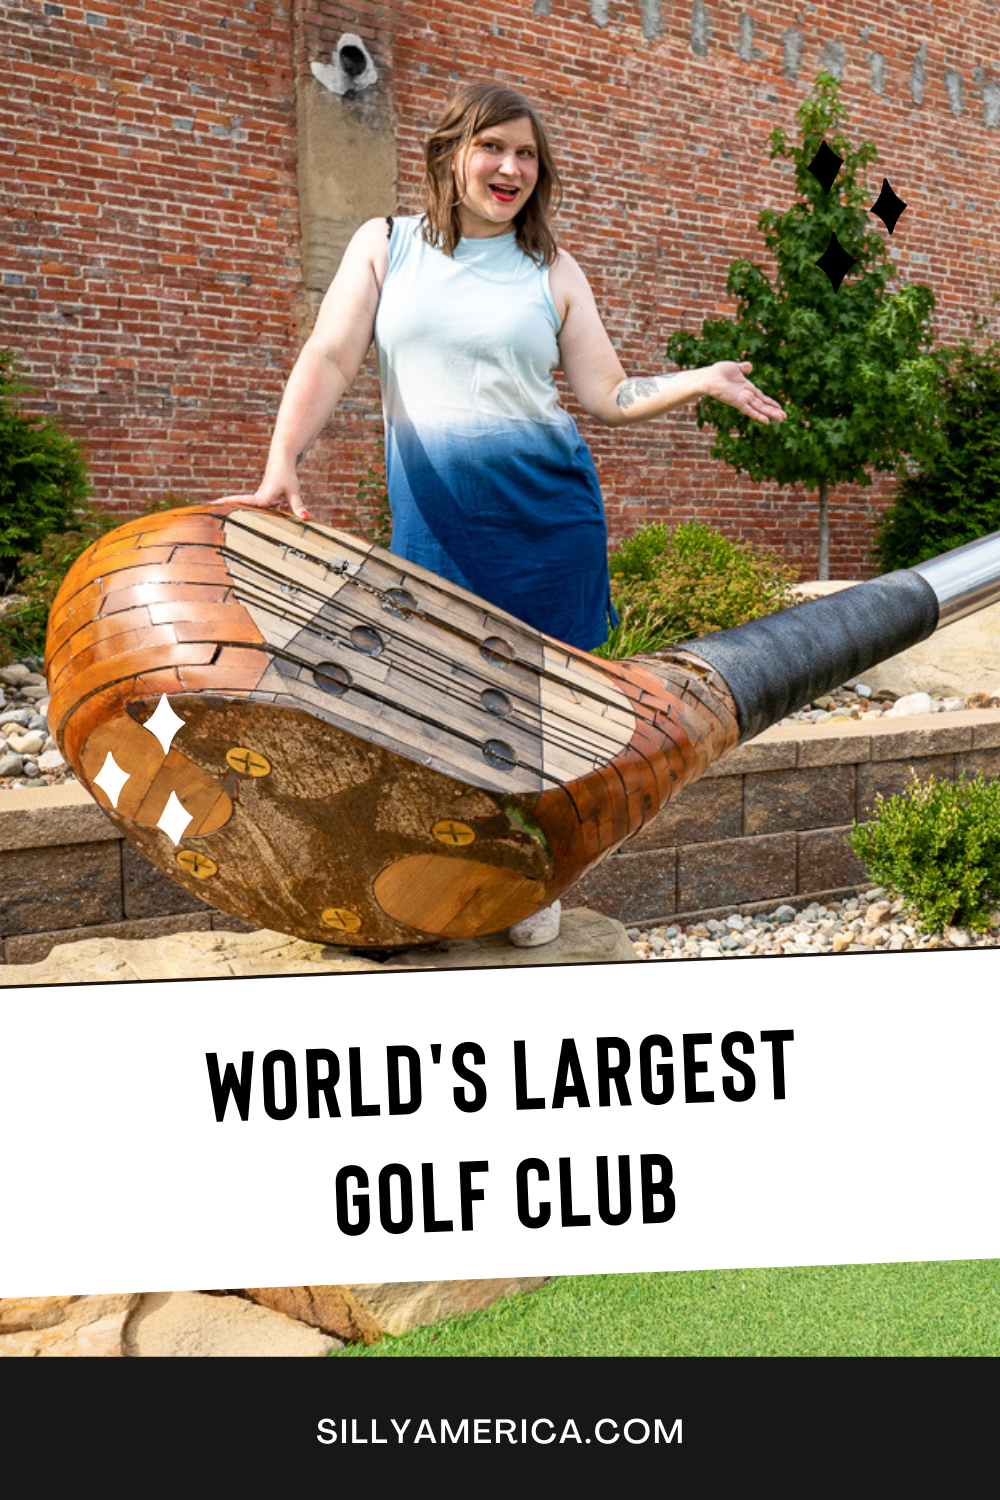 Take a drive to this Illinois roadside attraction: the world's largest golf club in Casey, Illinois. I'd say that it is definitely above par. The world's largest golf driver is 45 feet, 9.4 inches long and weighs 731 pounds. Visit on a road trip to Casey, Illinois! #IllinoisRoadsideAttractions #IllinoisRoadsideAttraction #RoadsideAttractions #RoadsideAttraction #RoadTrip #IllinoisRoadTrip #IllinoisWeekendGetaways #IllinoisWithKids #IllinoisRoadTripTravel